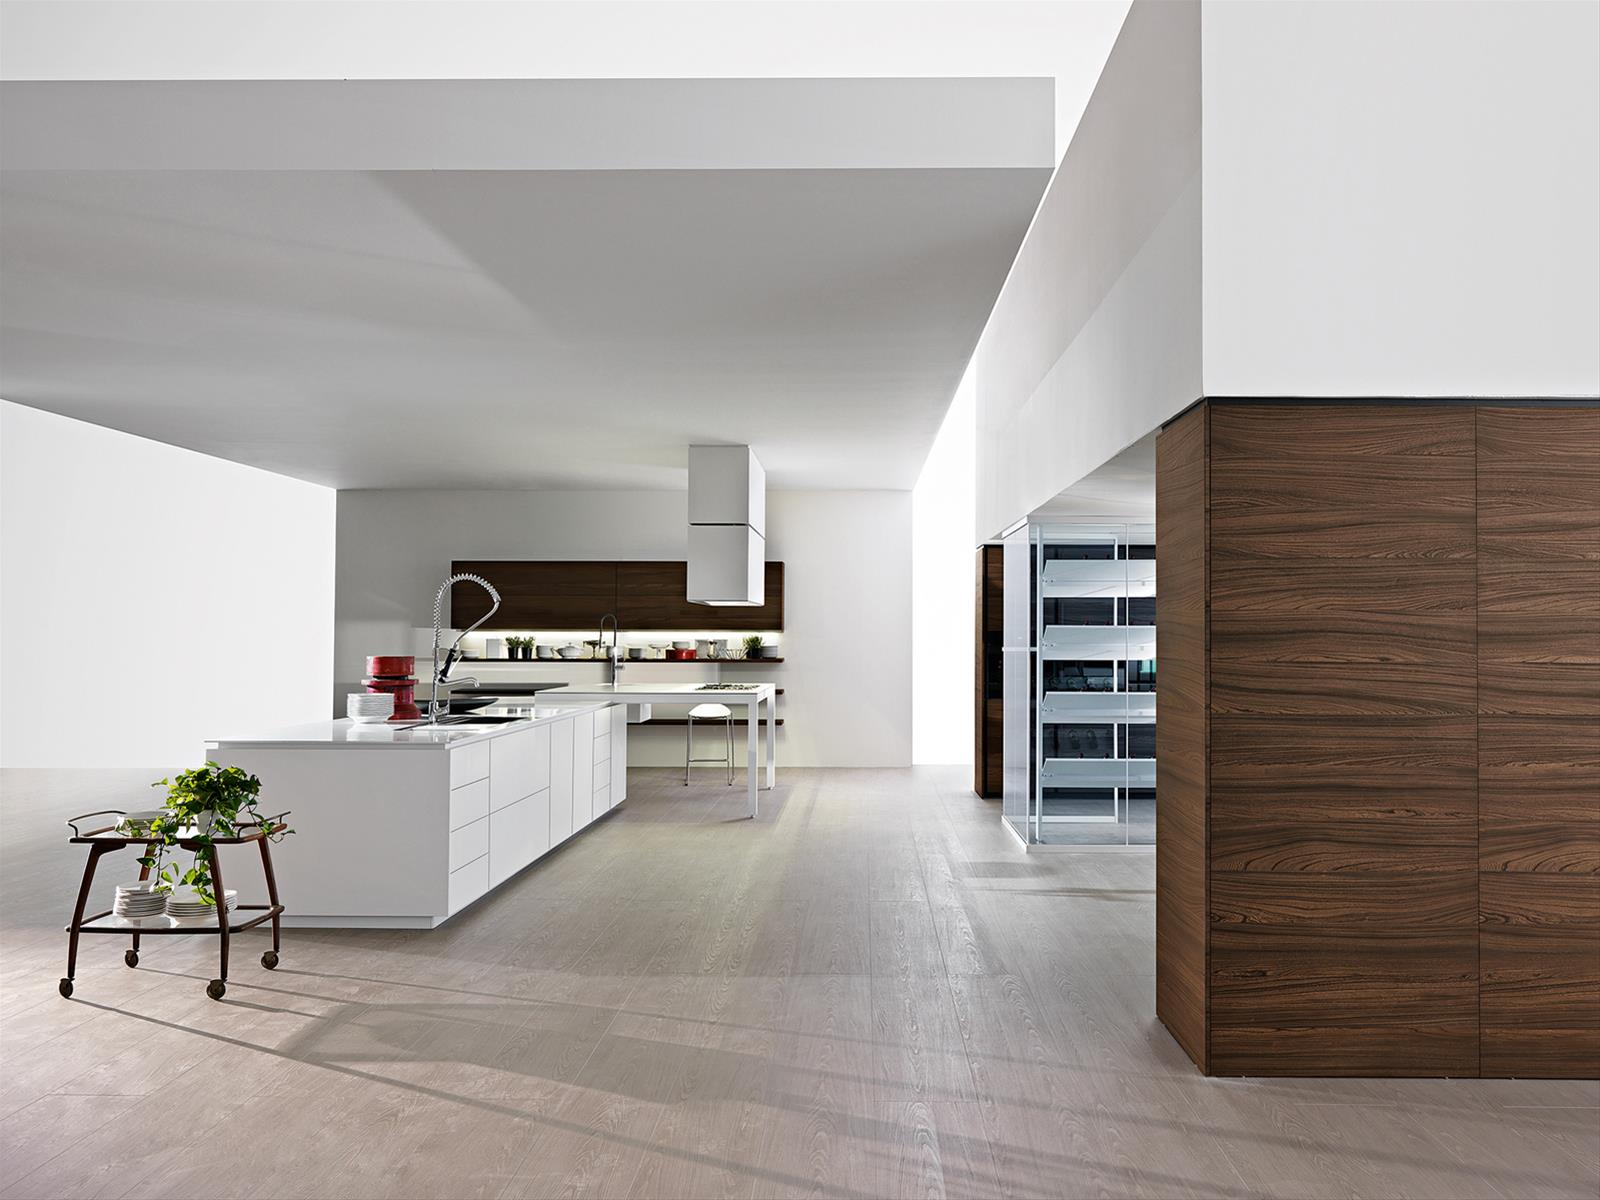 Banco Dada Kitchens